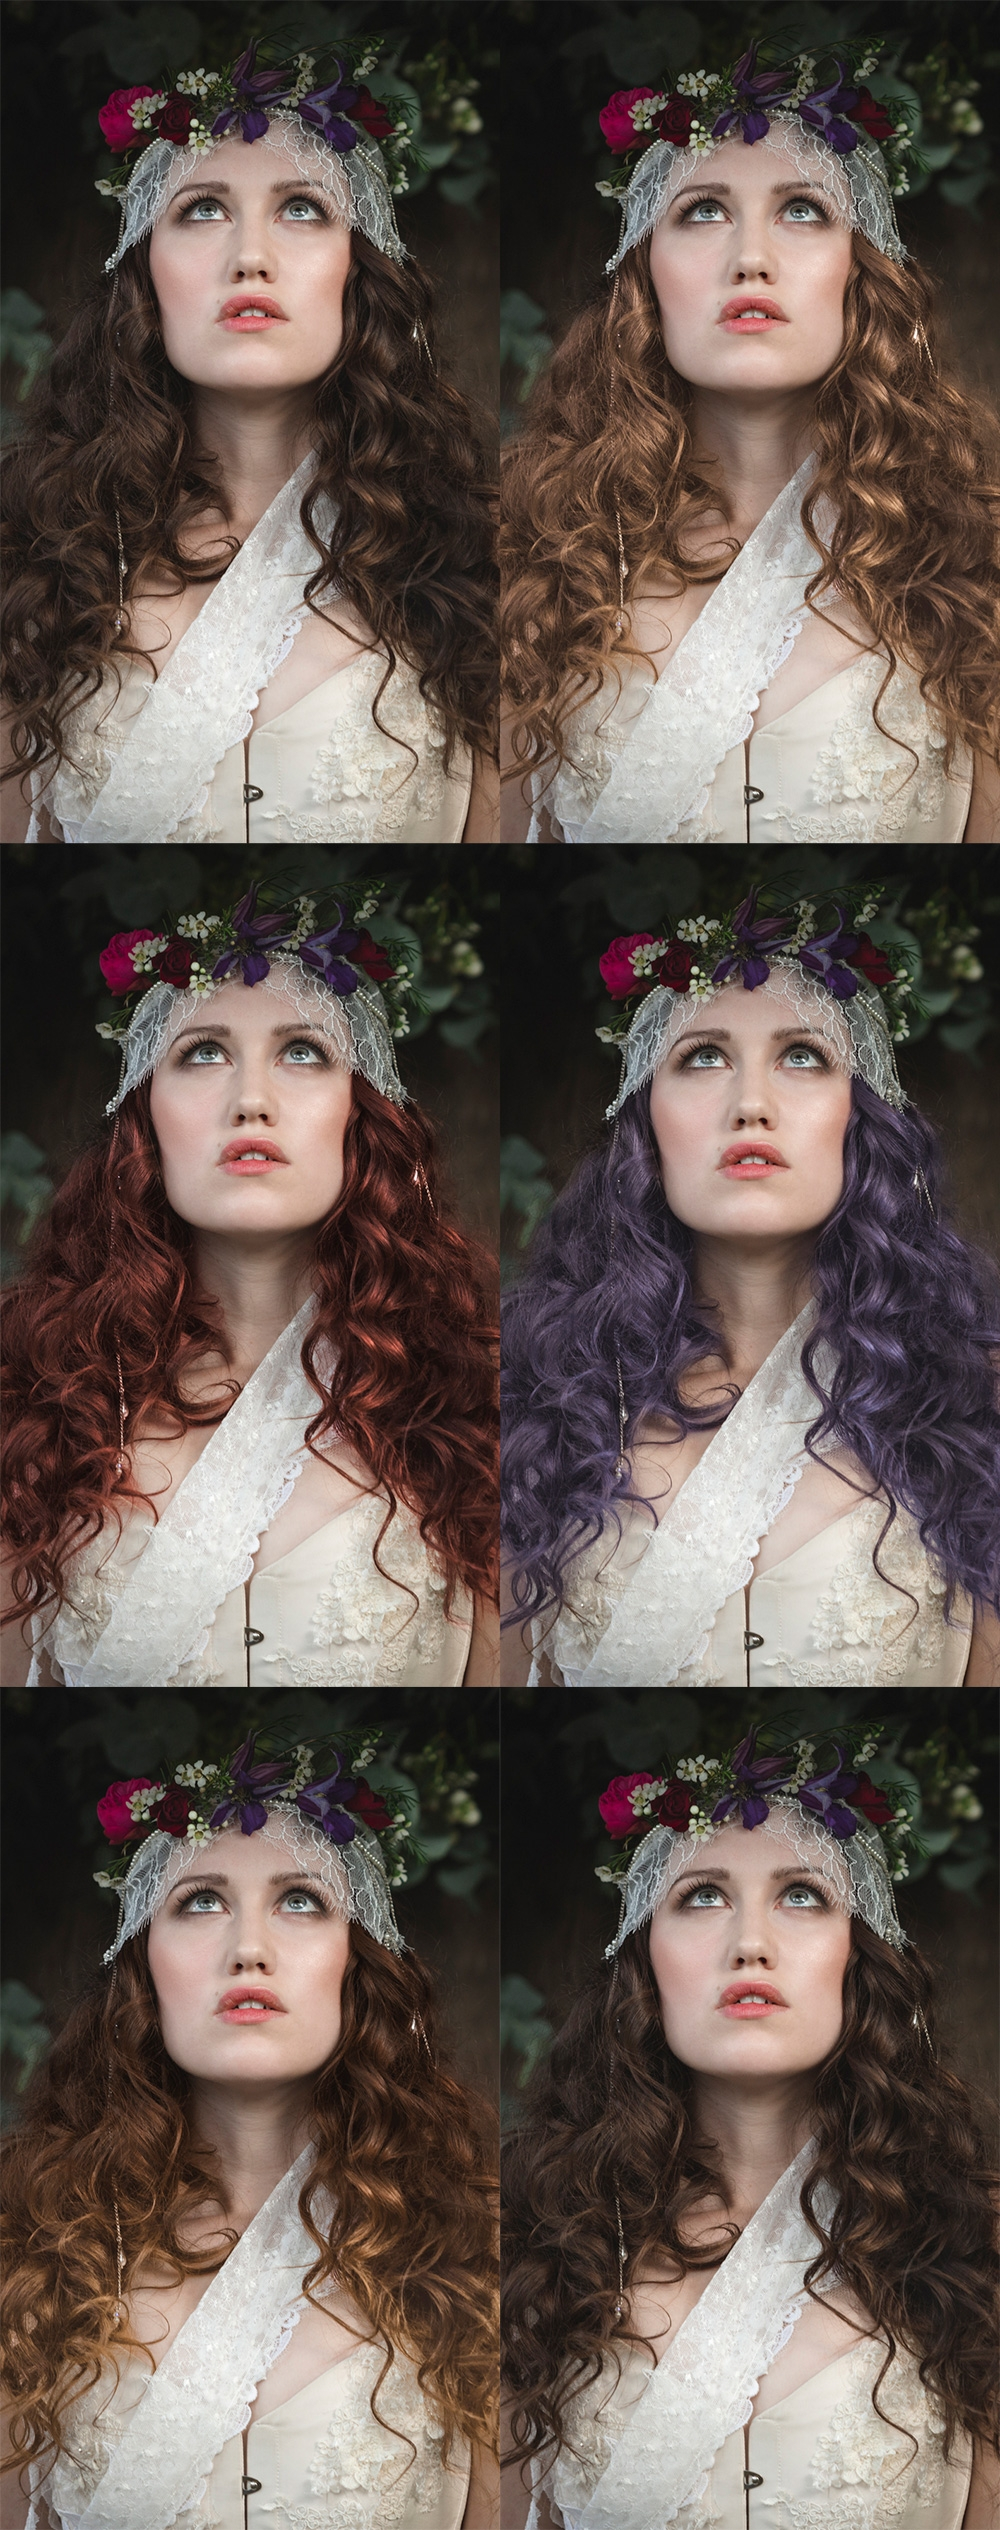 How to Change Hair Color in Photoshop - PHLEARN